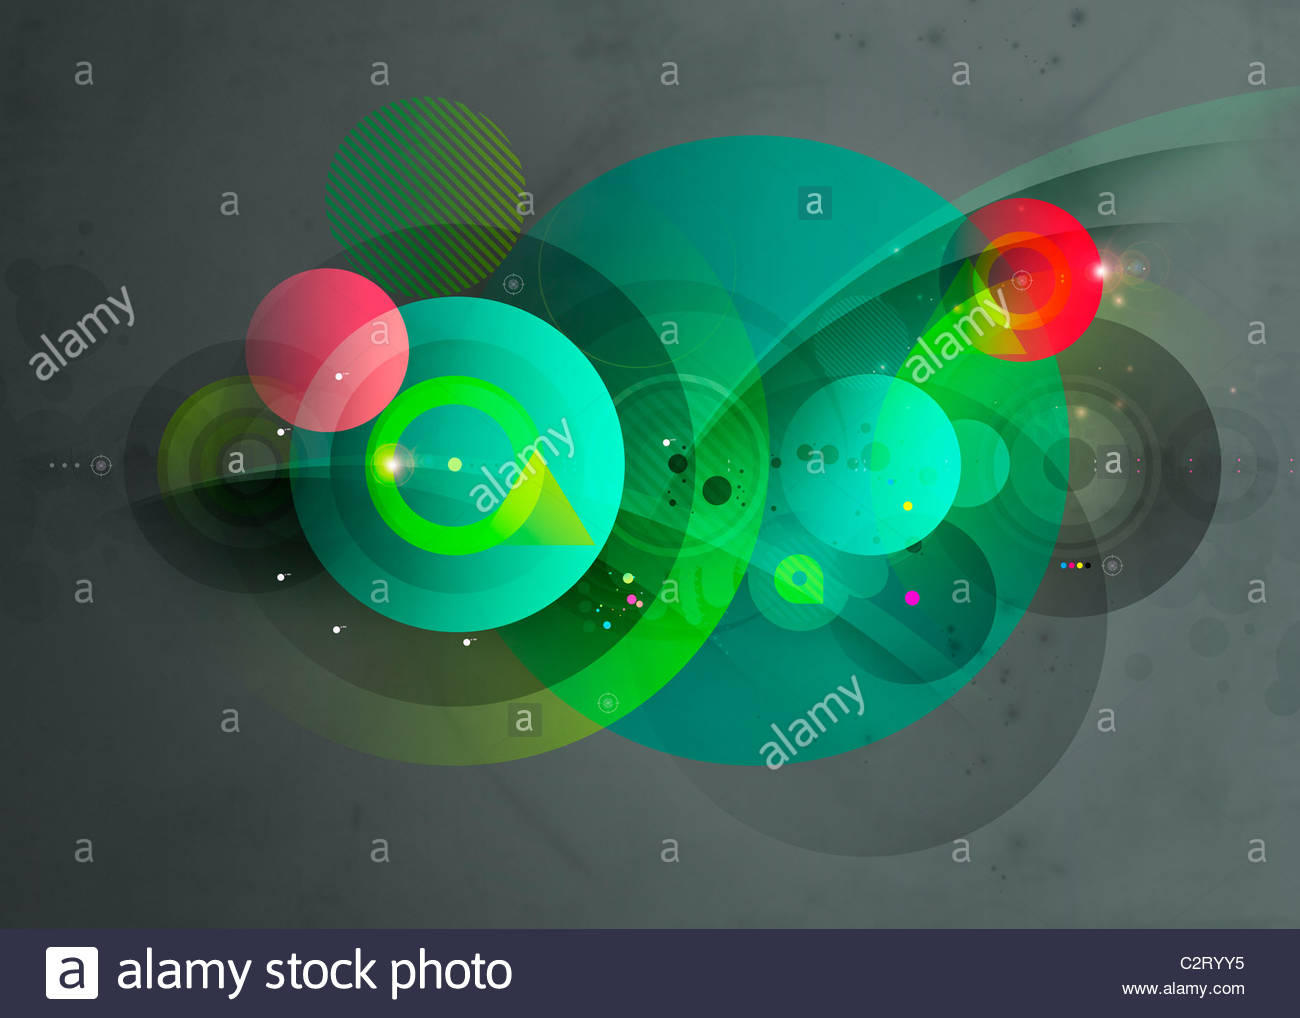 Abstract montage of green and red circles - Stock Image